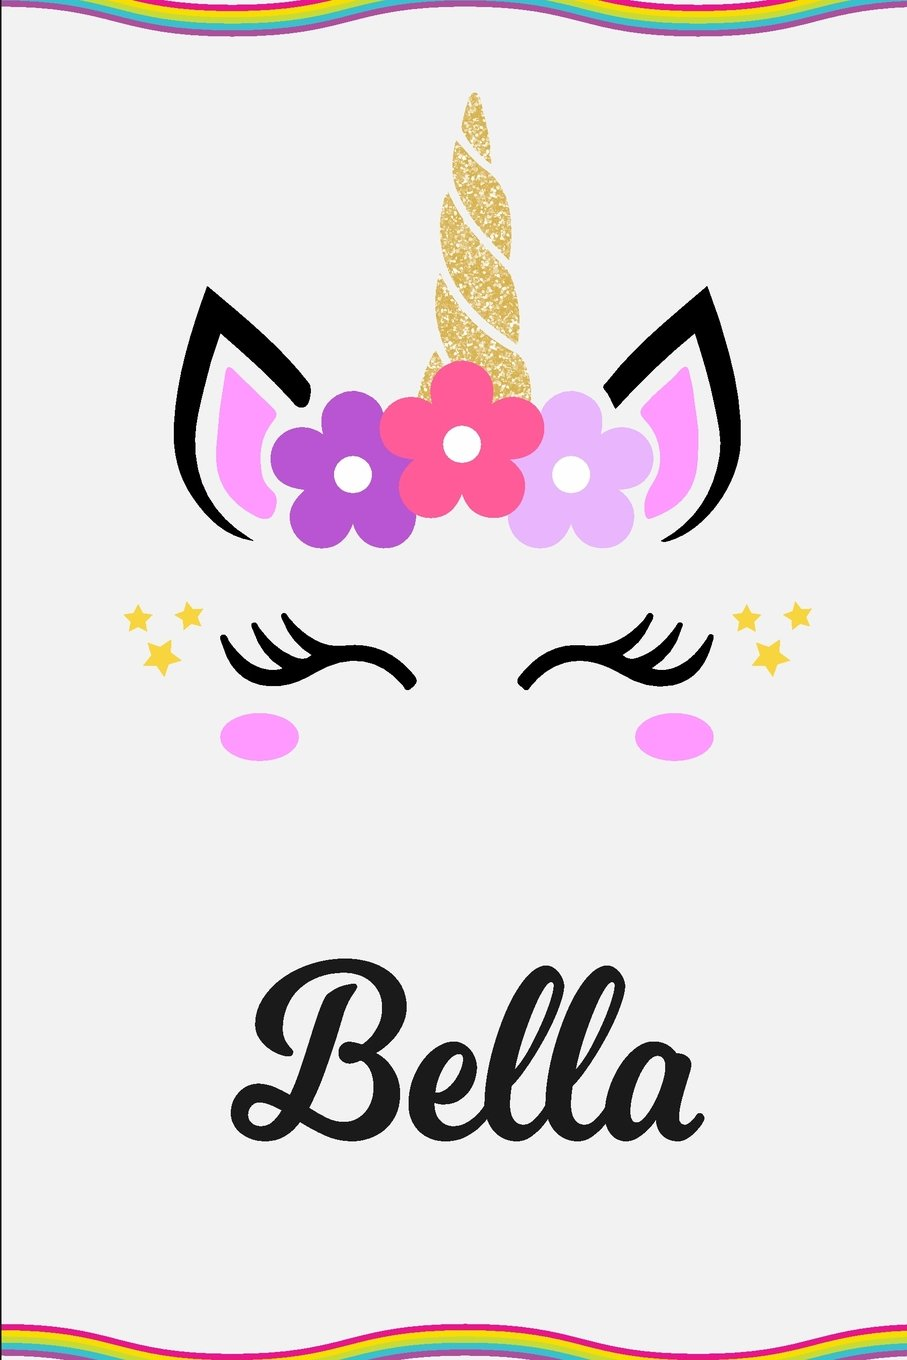 Read Online Bella: Personalized Unicorn Journal Gift  6 x 9 Sized, 100 Pages  Custom Unicorn Journal  Personalized Notebook  Custom Name Notebook  Bespoke Journal  Journals to Write In for Girls pdf epub